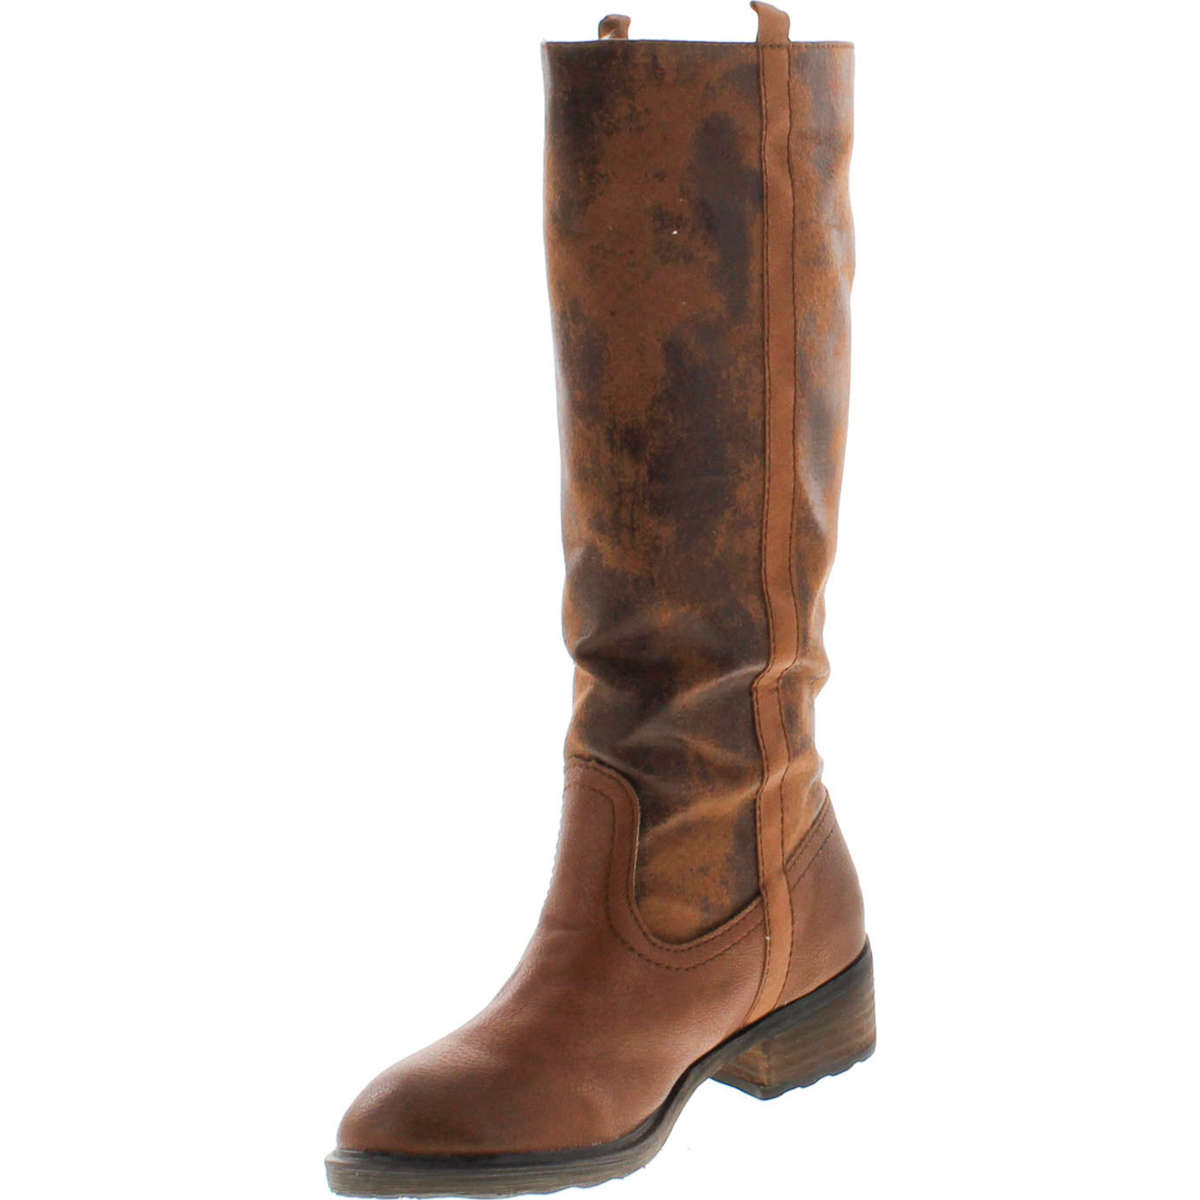 Volatile Womens Wilkes Wilkes Wilkes Riding Boots b7d72f